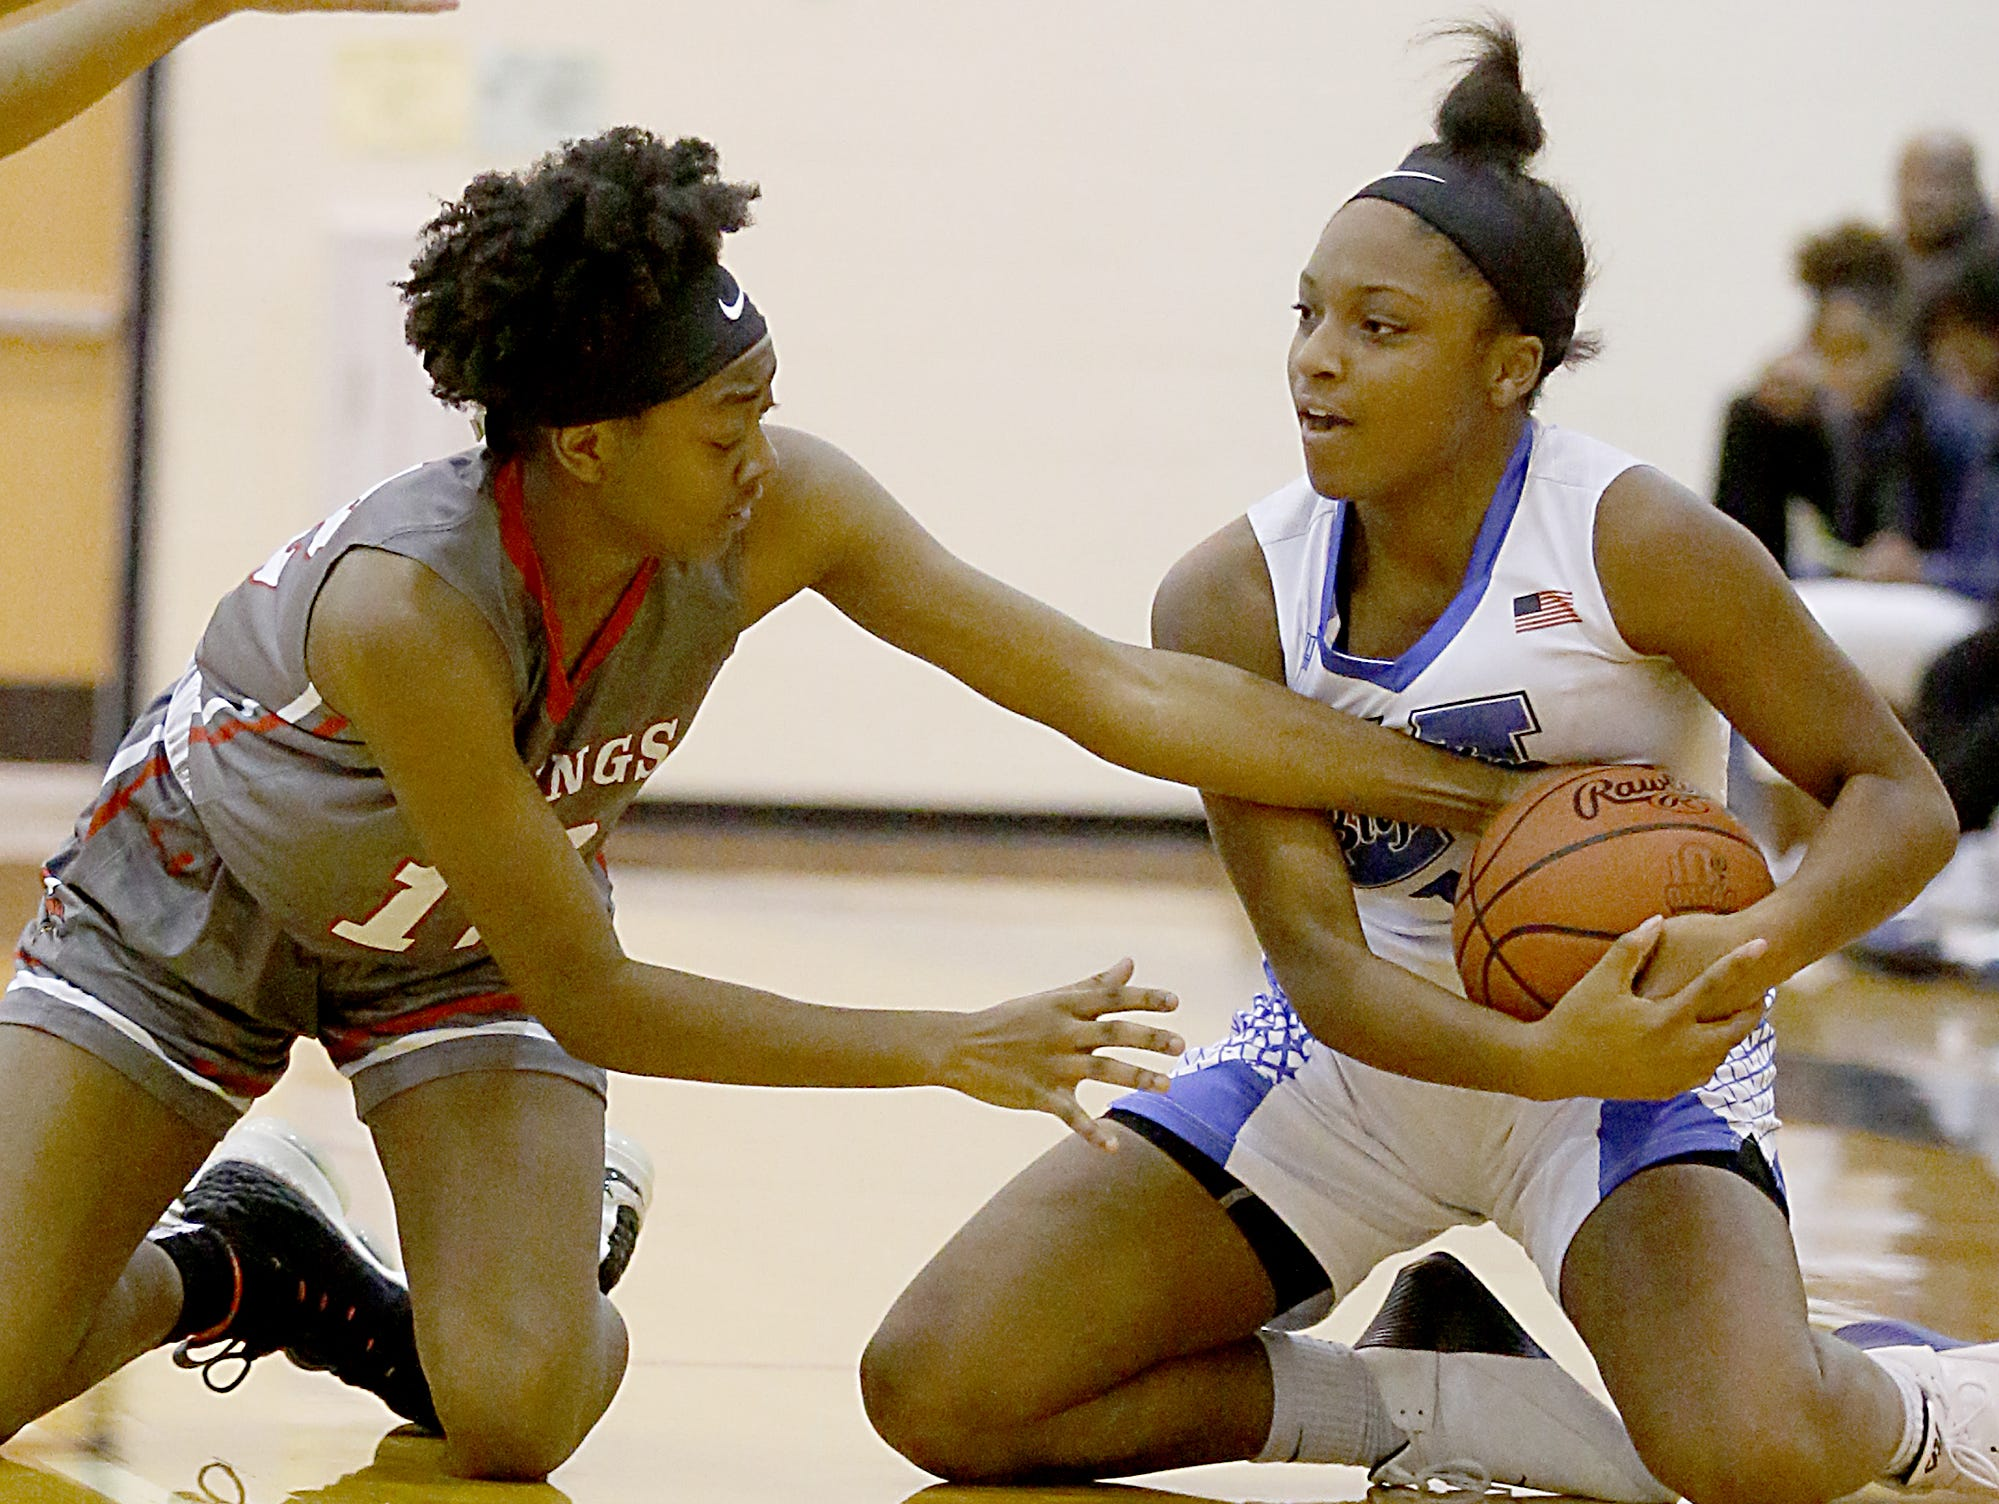 Hamilton forward Miracle Riggins hangs on to the ball as Princeton guard Madison Roshelle tries to steal during their game at Hamilton Wednesday, Dec. 5, 2018.